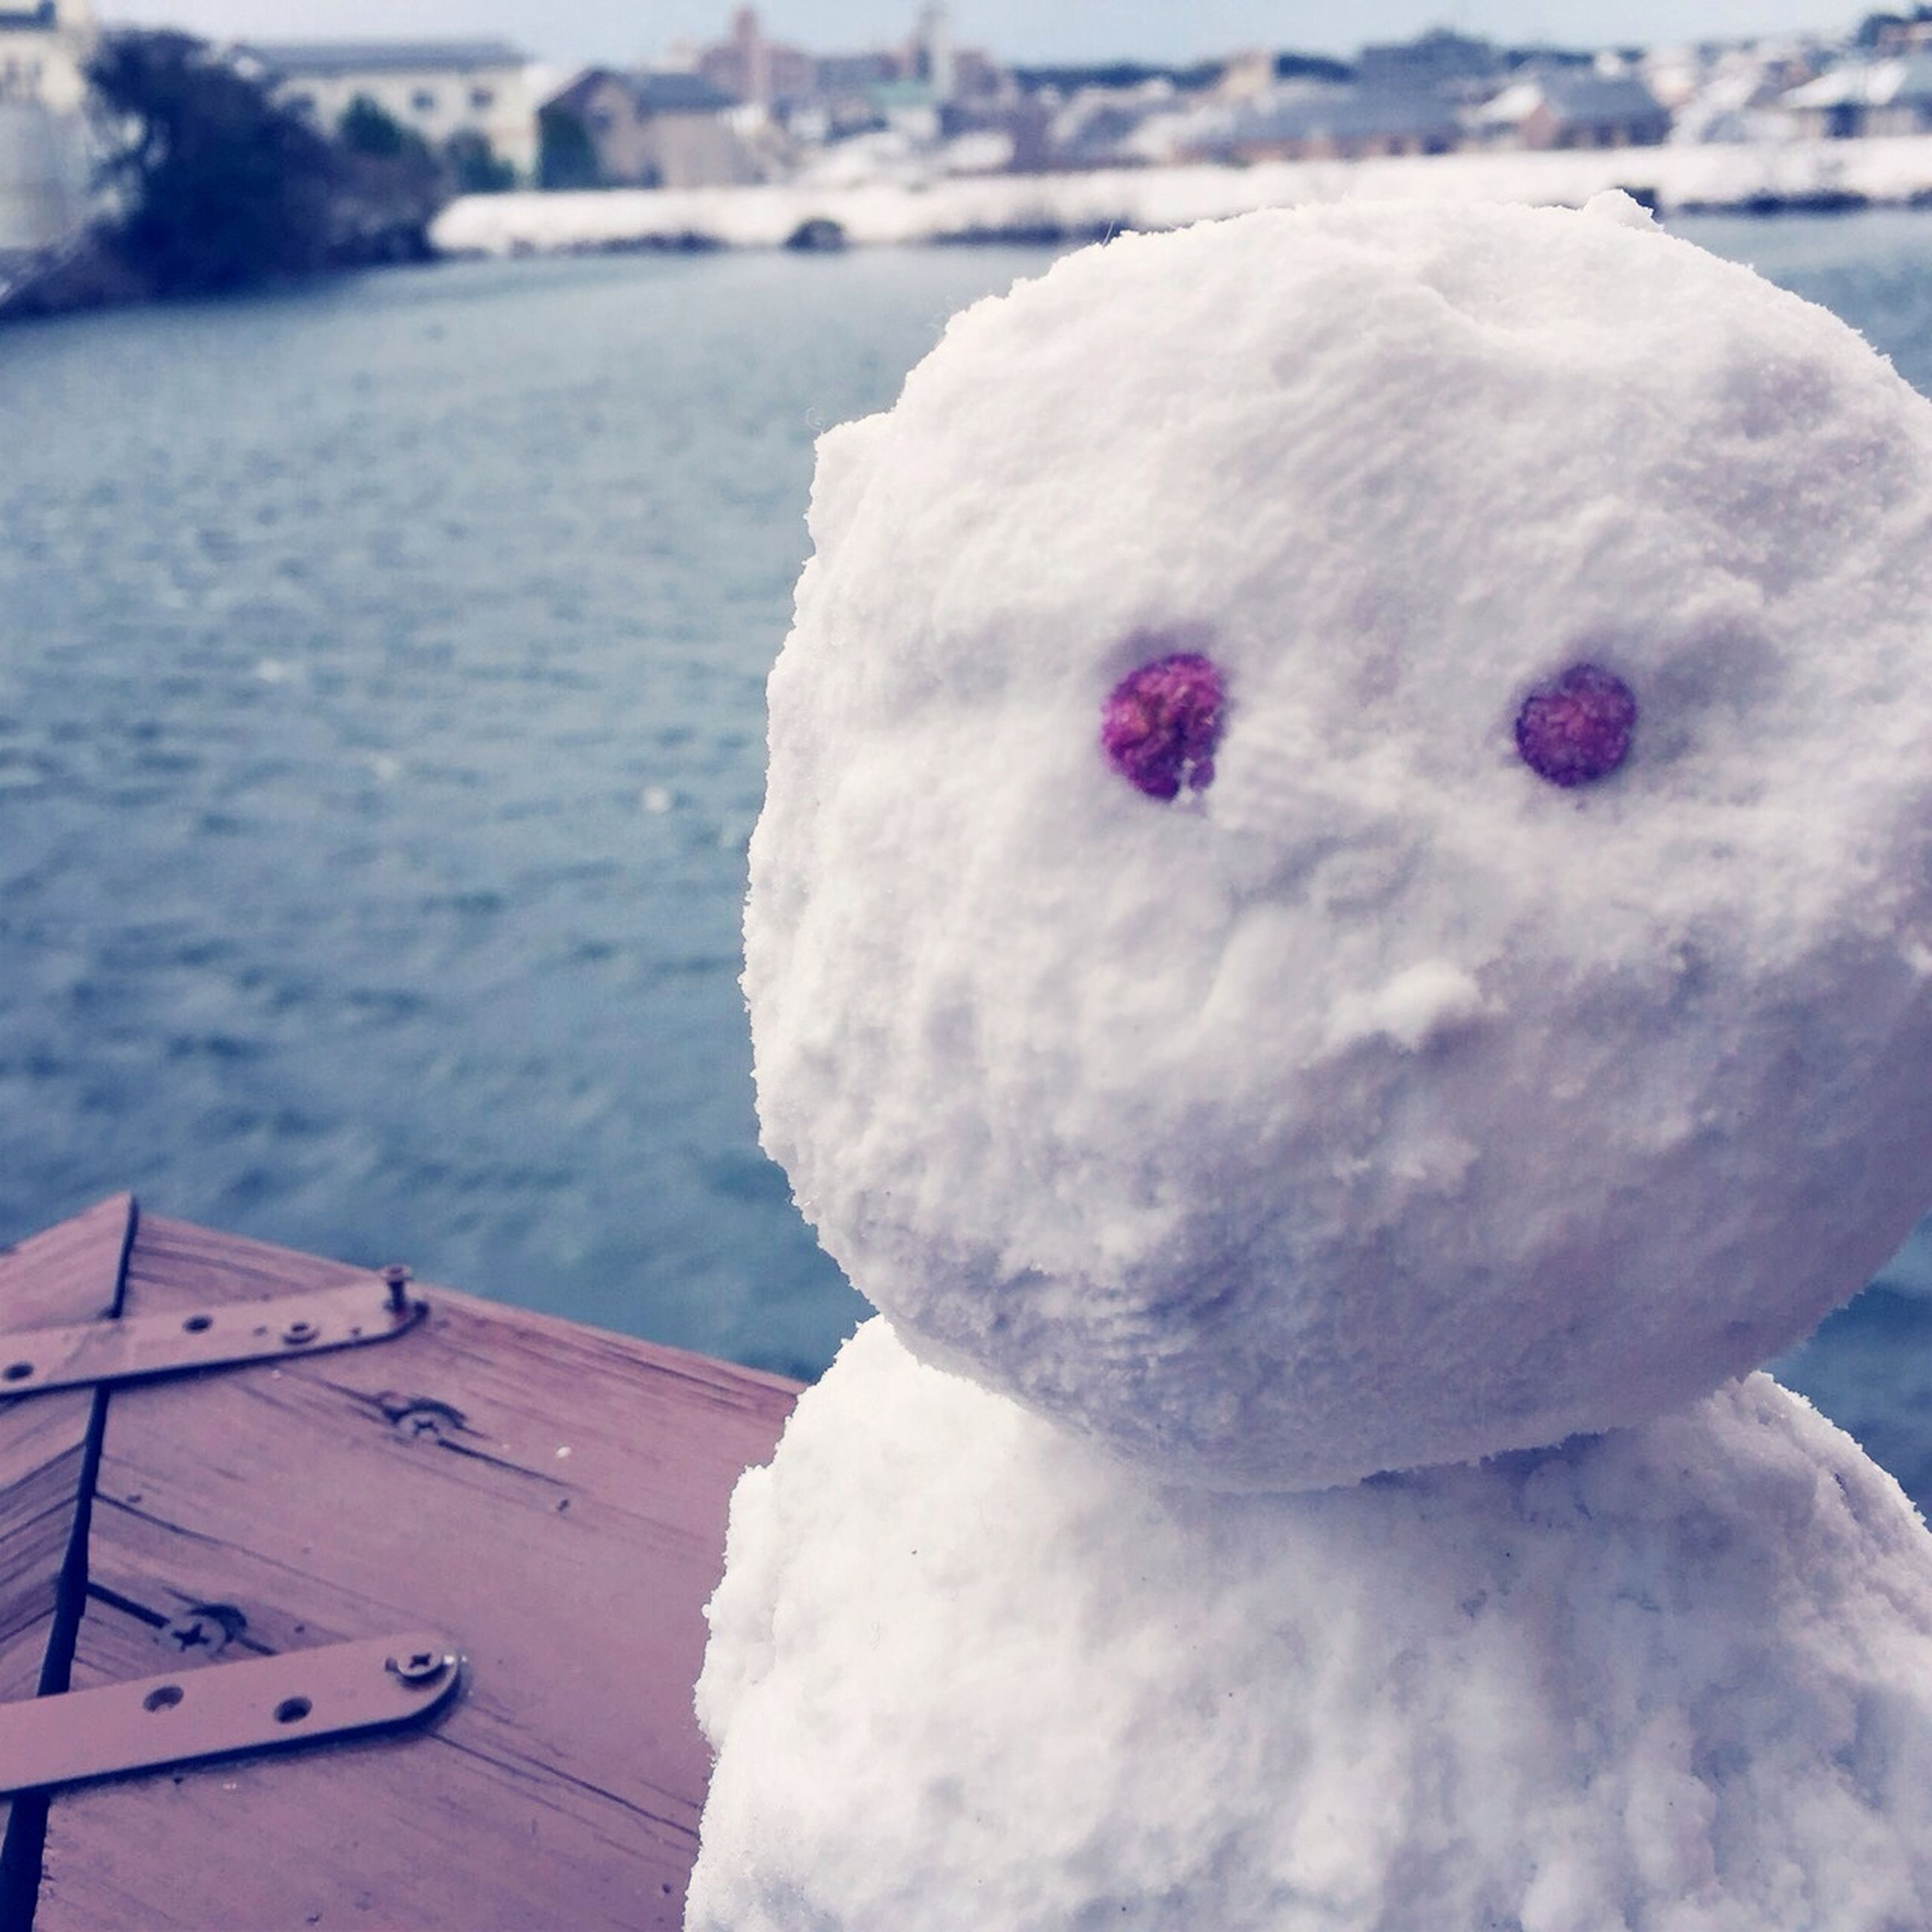 focus on foreground, water, close-up, white color, cold temperature, winter, frozen, snow, day, outdoors, no people, sea, weather, nature, high angle view, creativity, animal representation, river, sweet food, art and craft